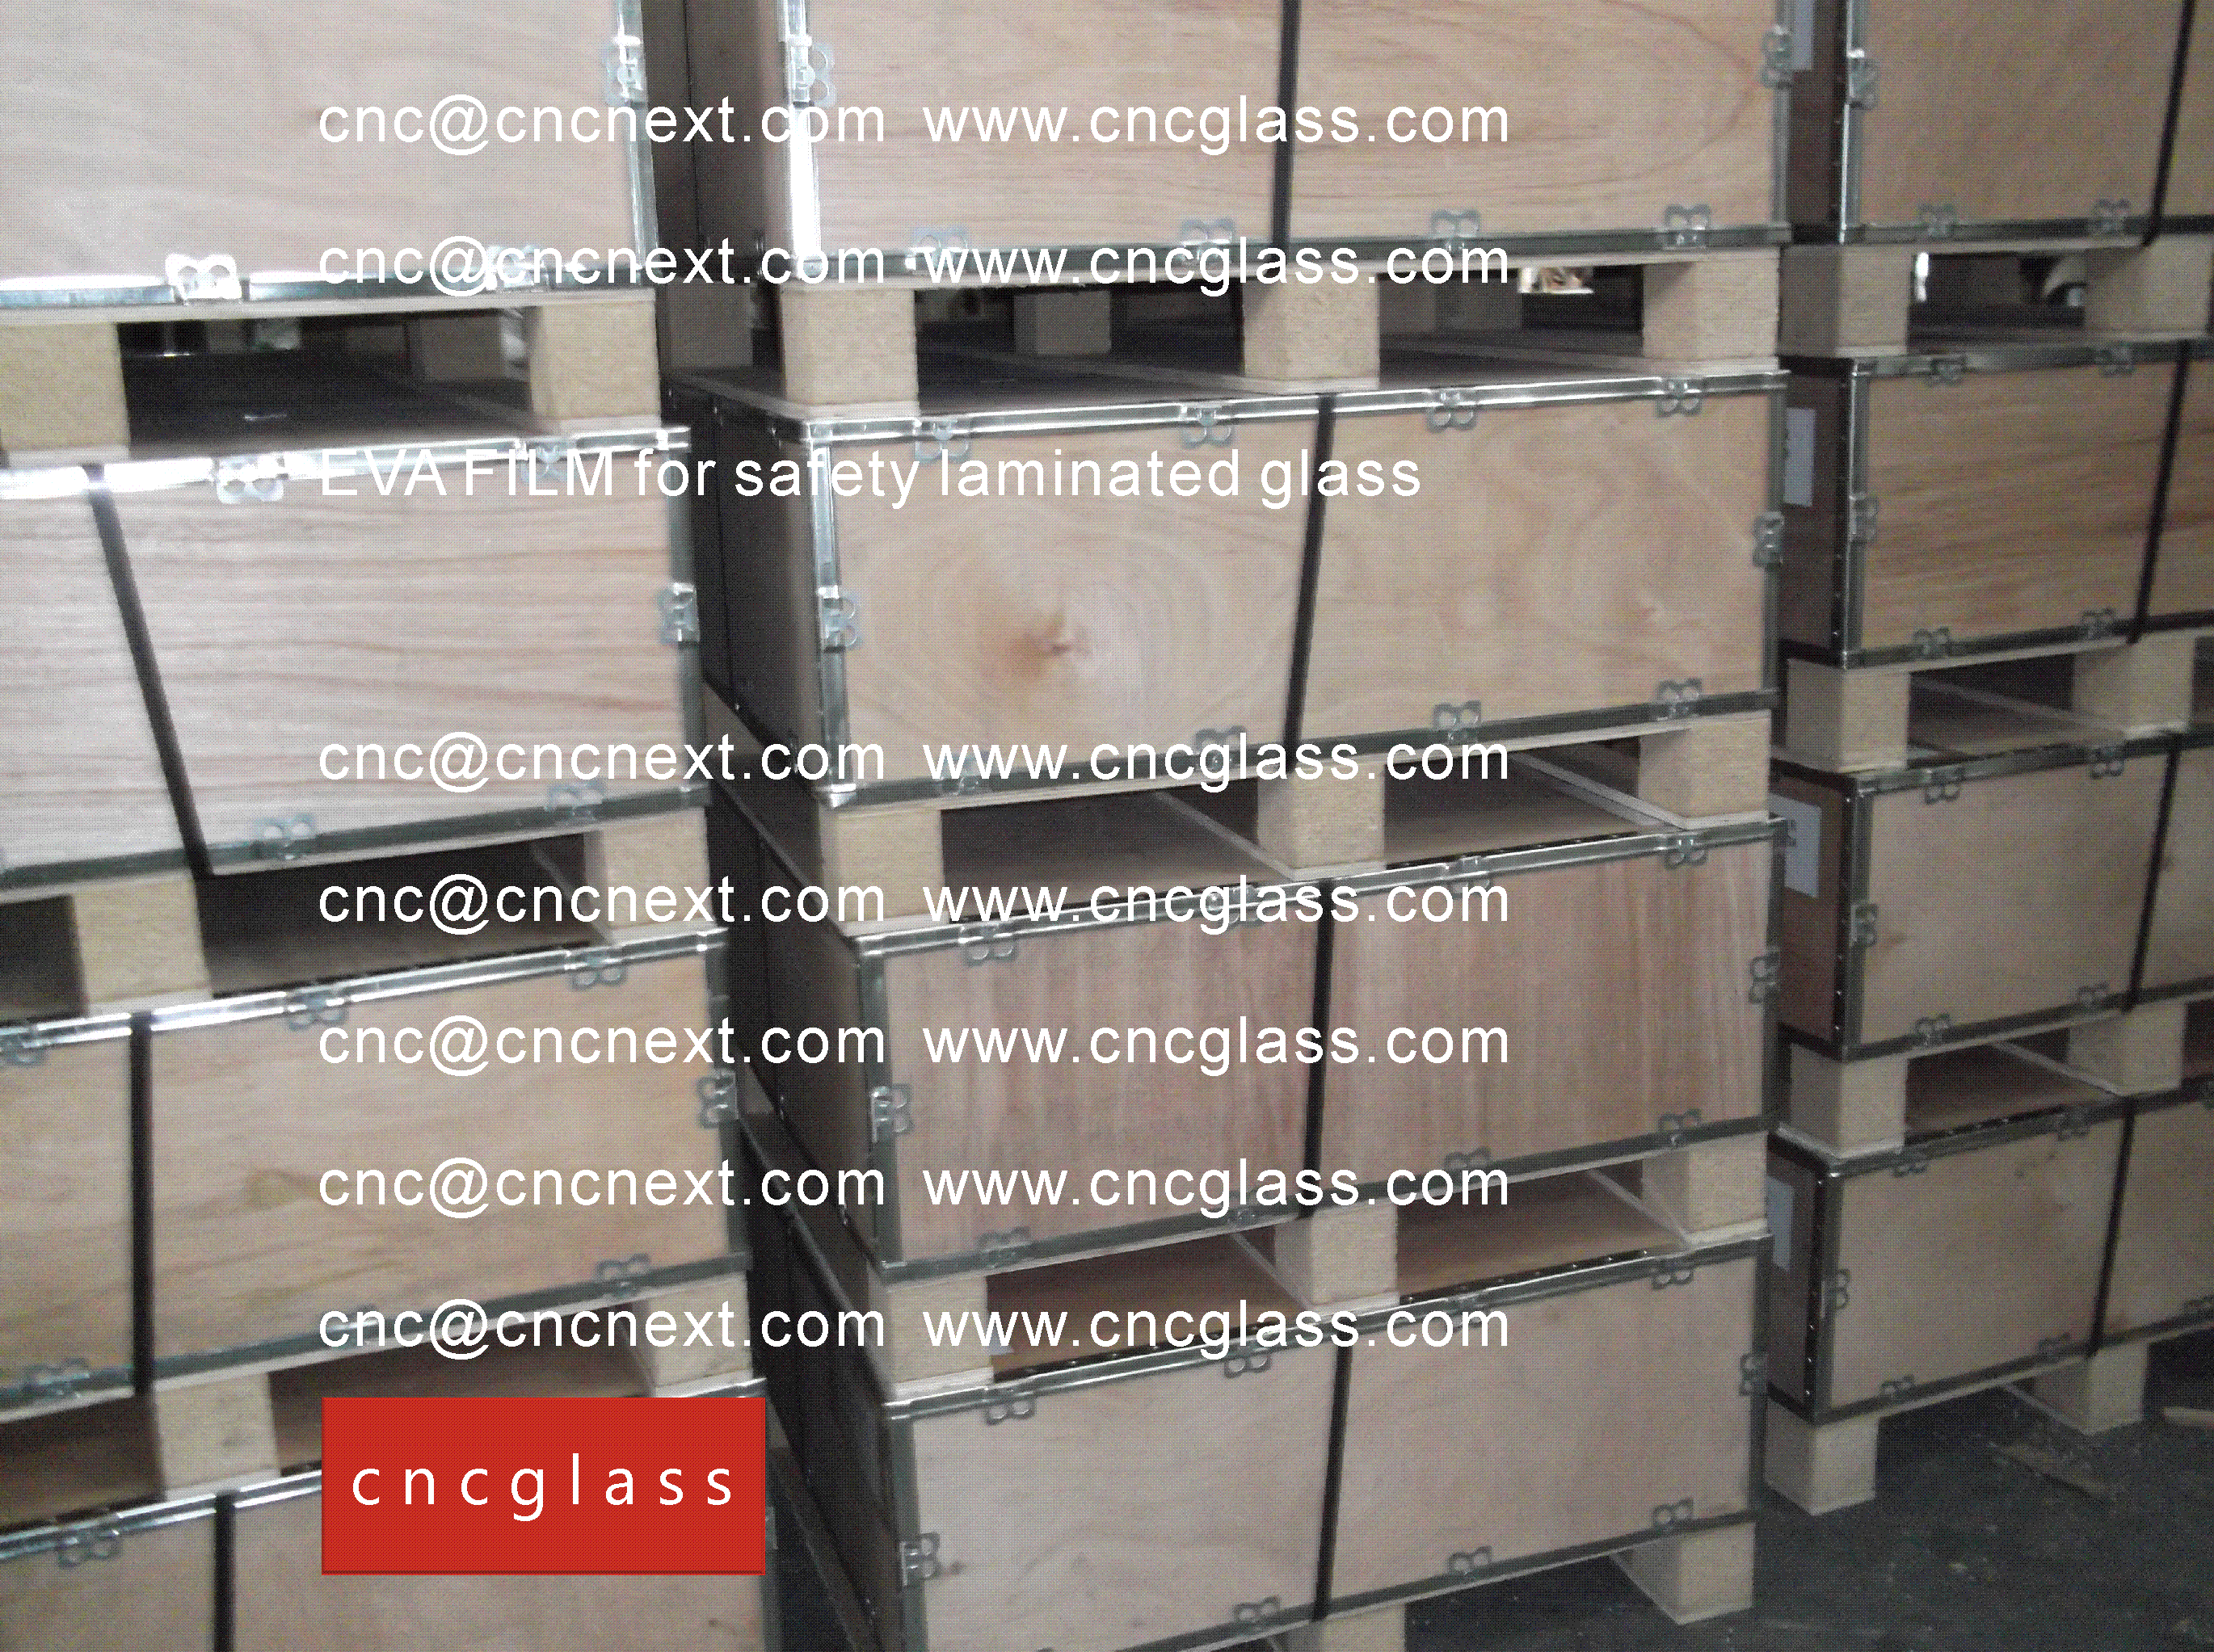 00 EVALAM INATING FILM LOADING CONTAINER (SAFETY LAMINATED GLASS)